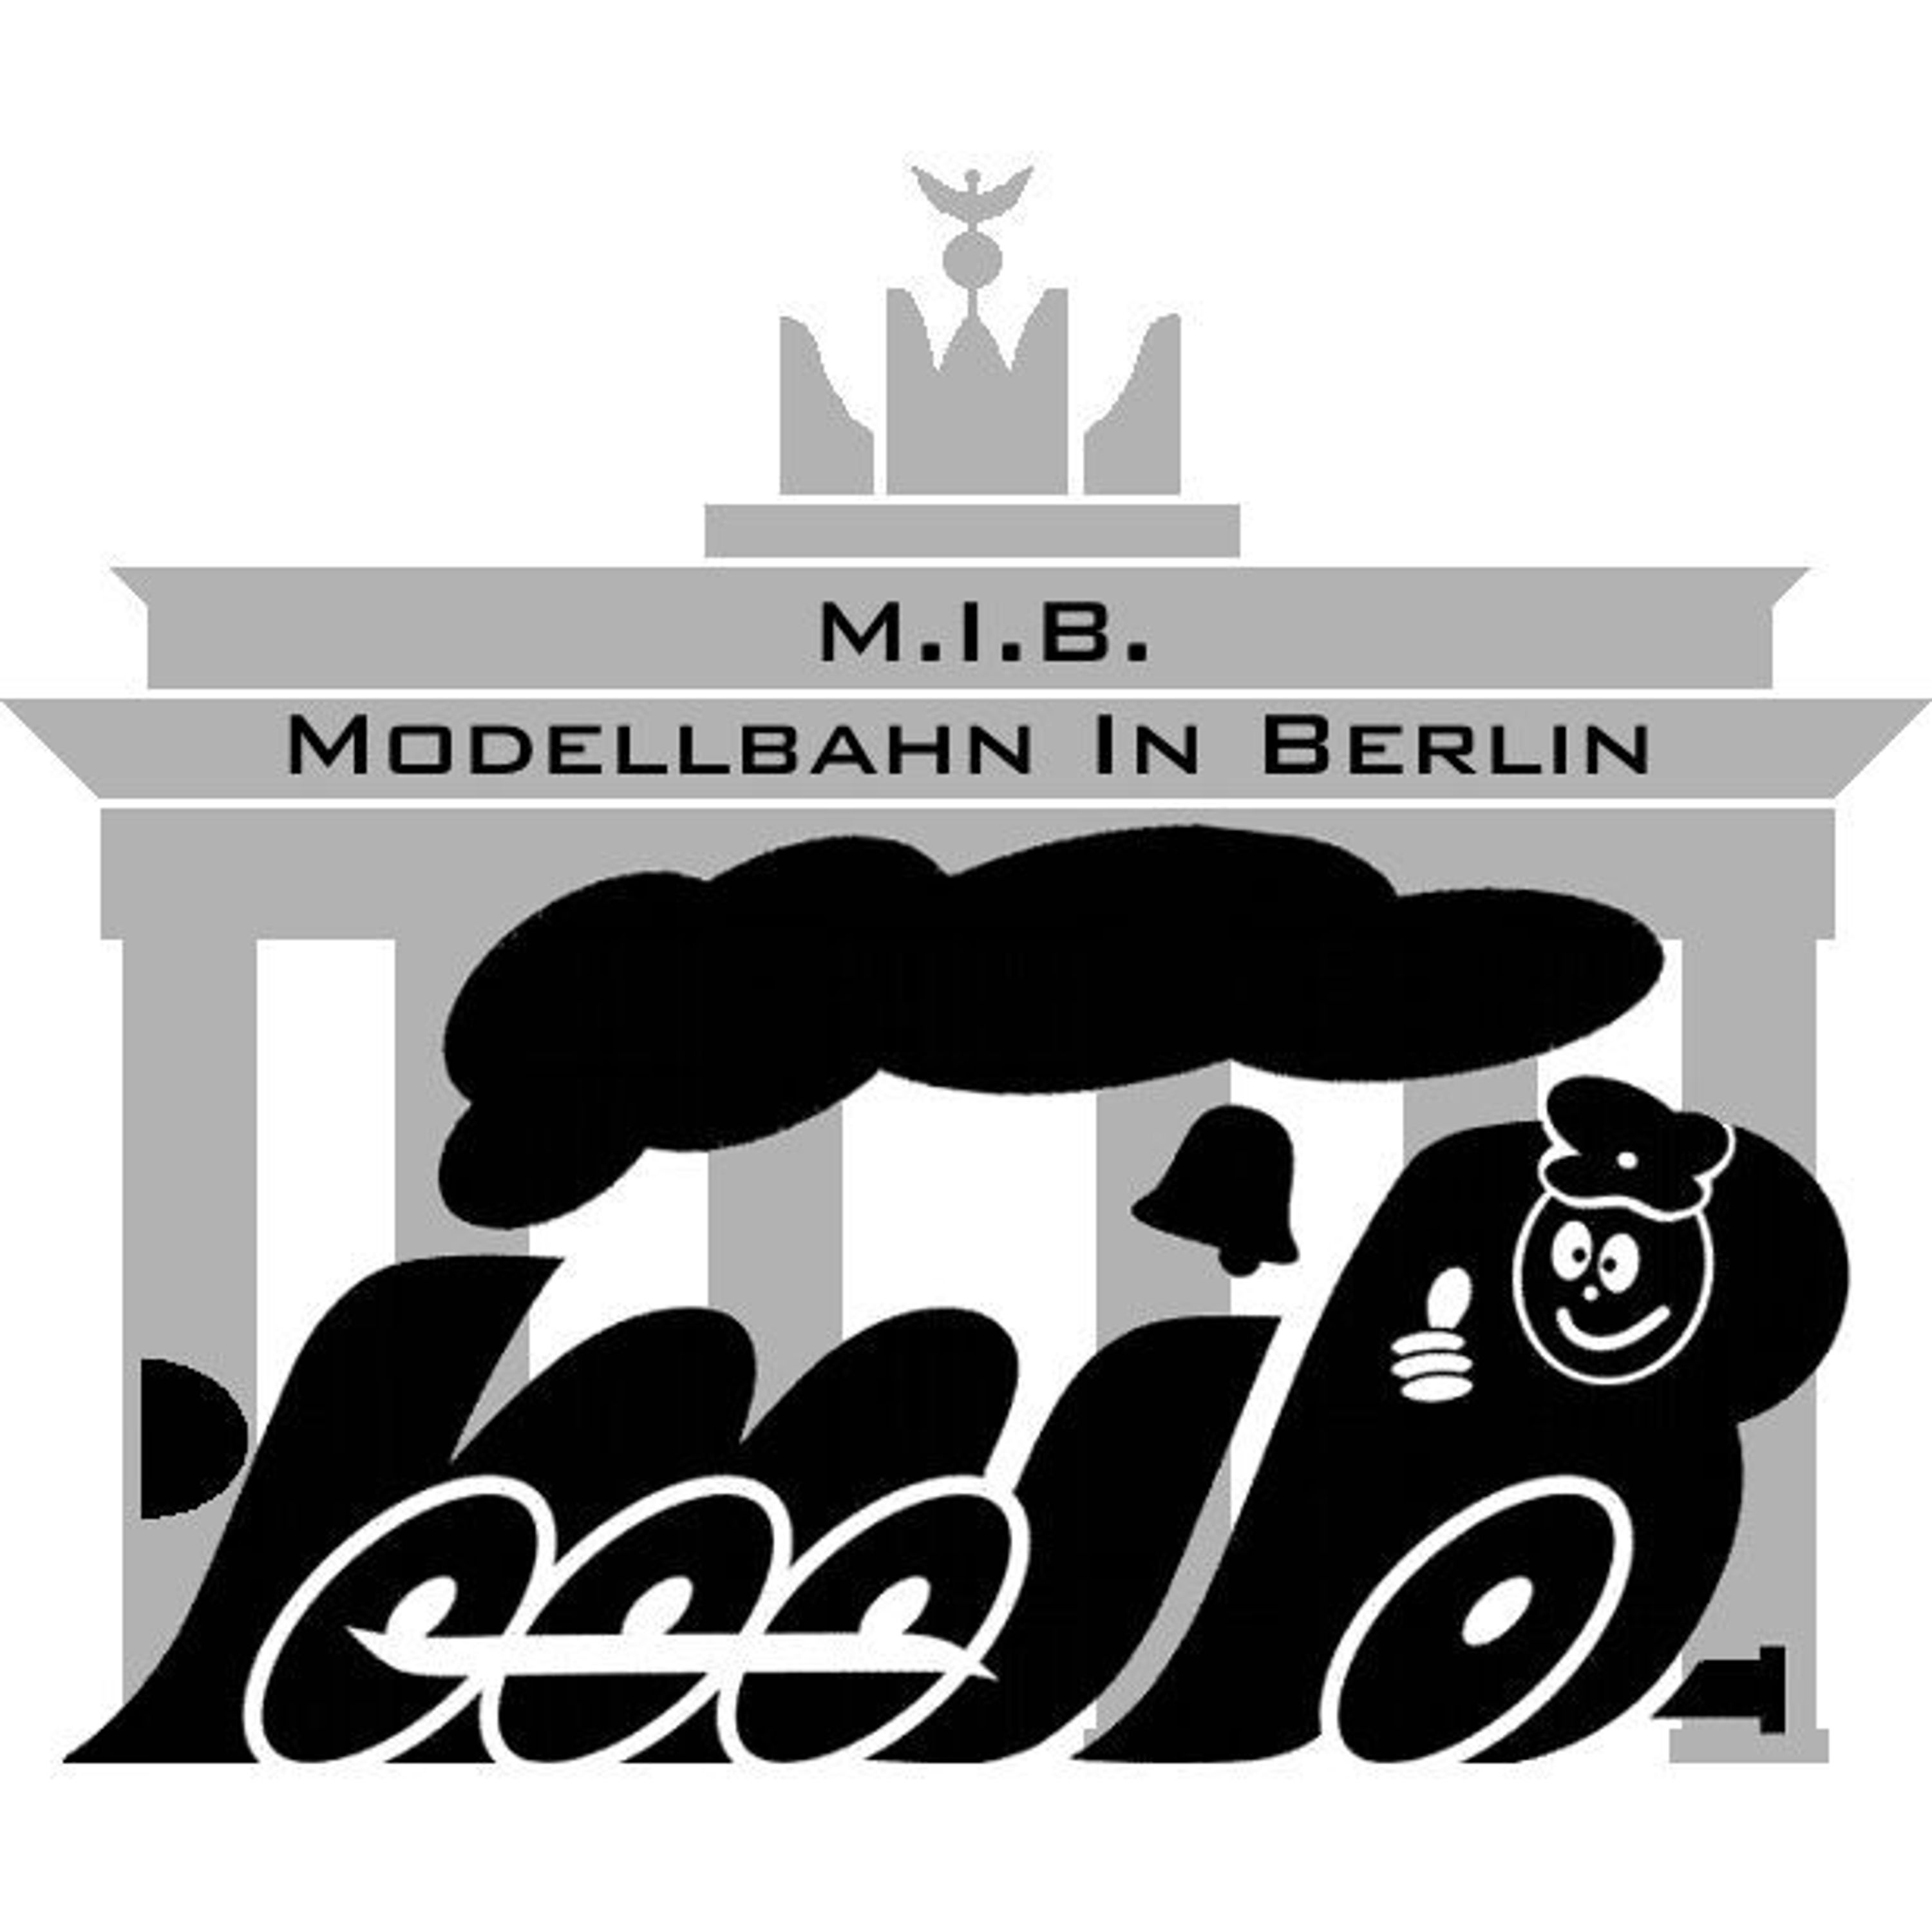 Modellbahn in Berlin